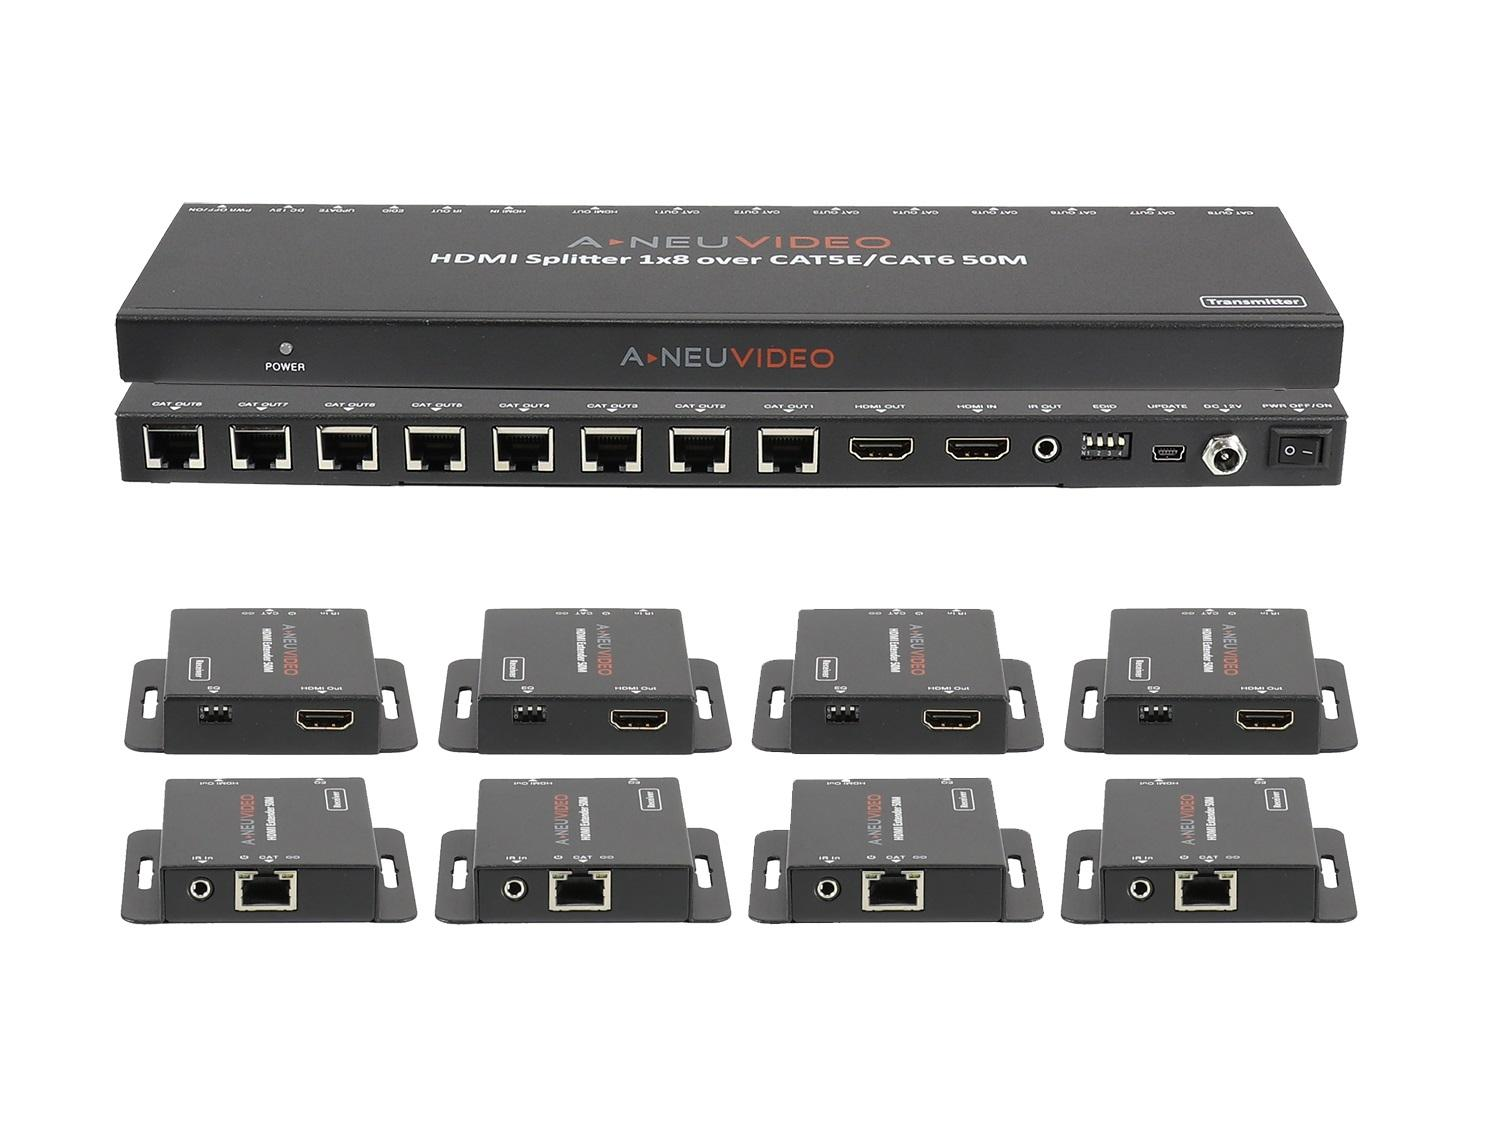 A-NeuVideo ANI-0108POE 1x8 POE HDMI Splitter Extender 150ft/45m over CAT5e/6 with 8x Receivers